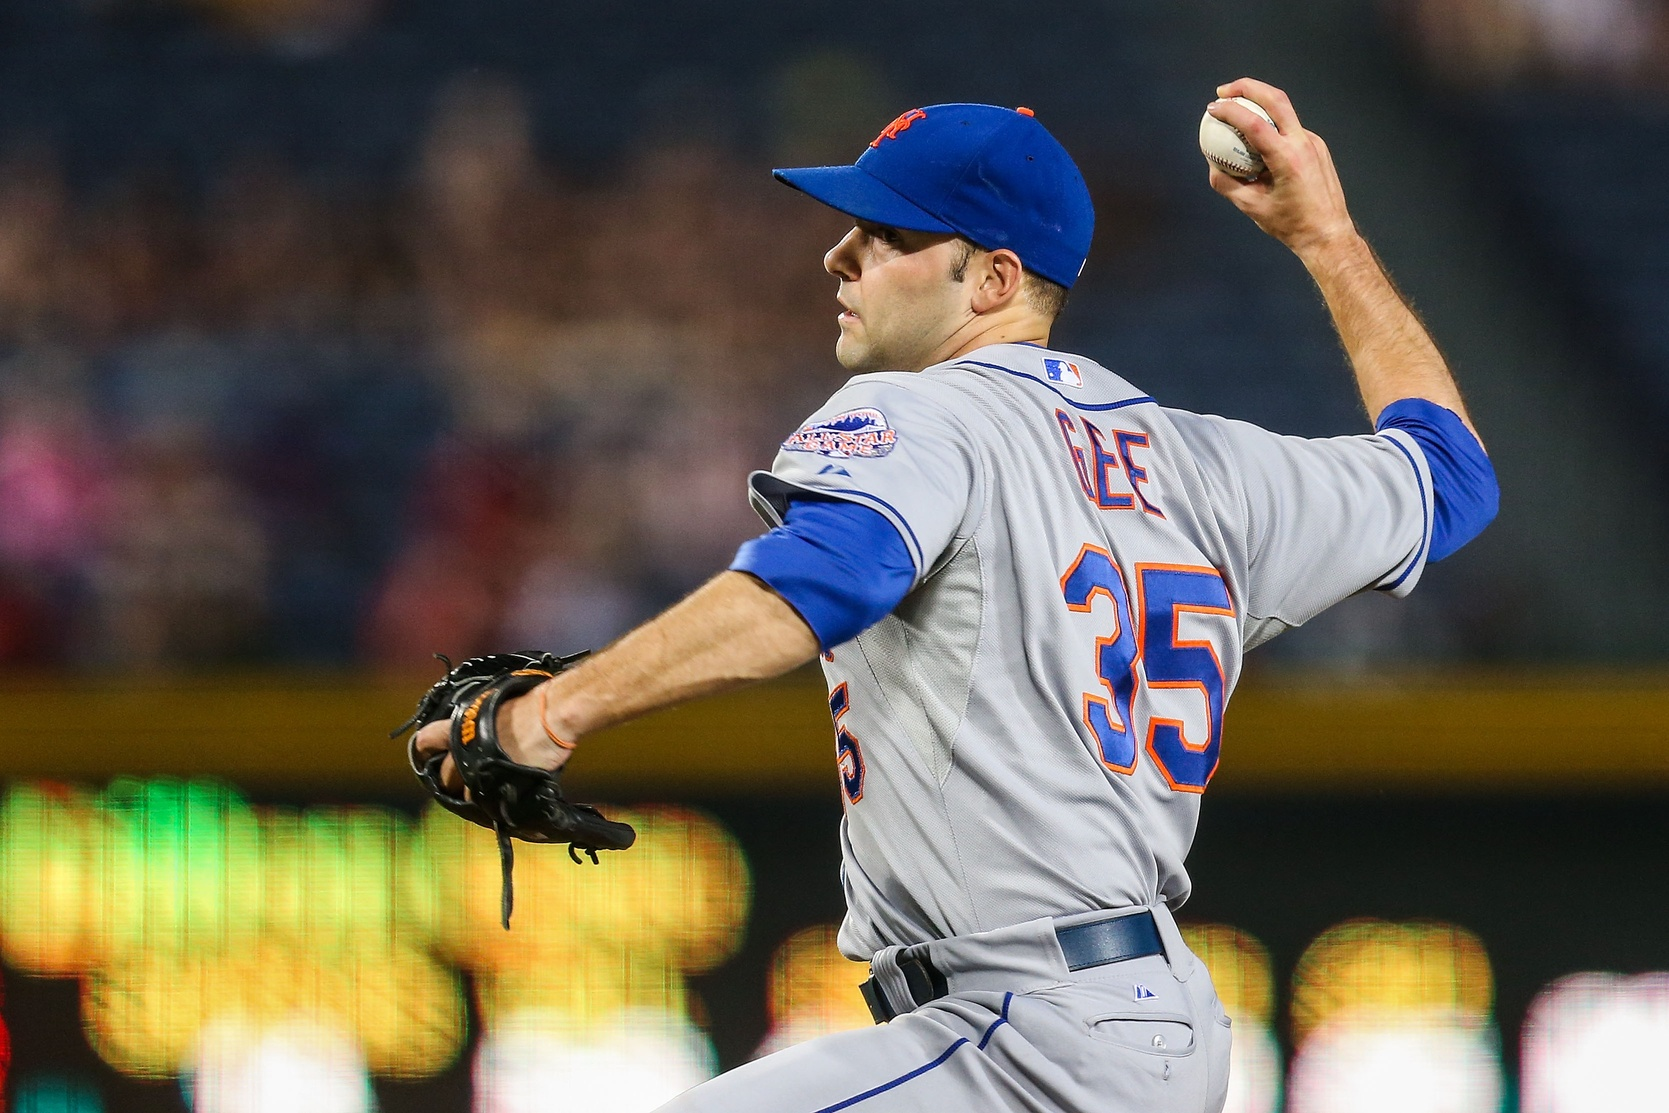 Mets End First Half On High Note With 4-2 Win Over Pirates